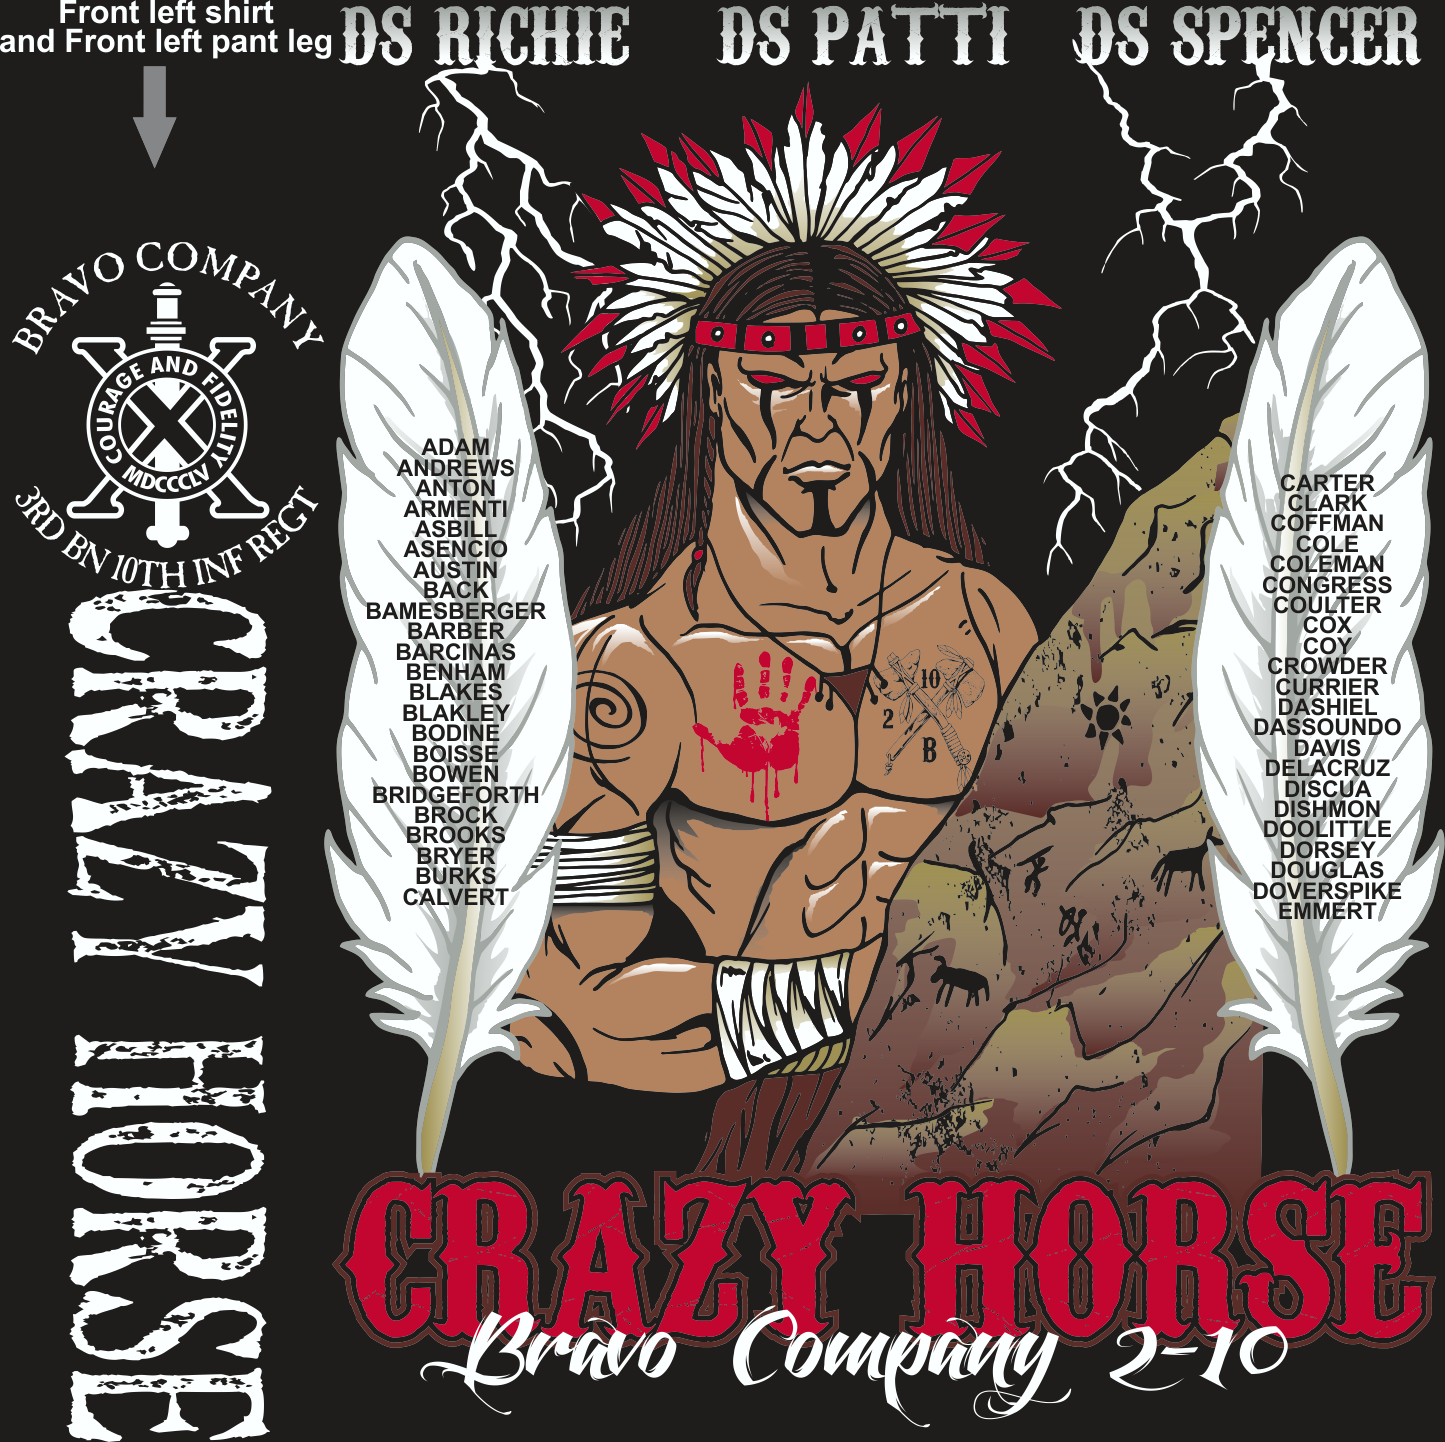 BRAVO 2-10 CRAZY HORSE GRADUATING DAY 7-28-2016 digital